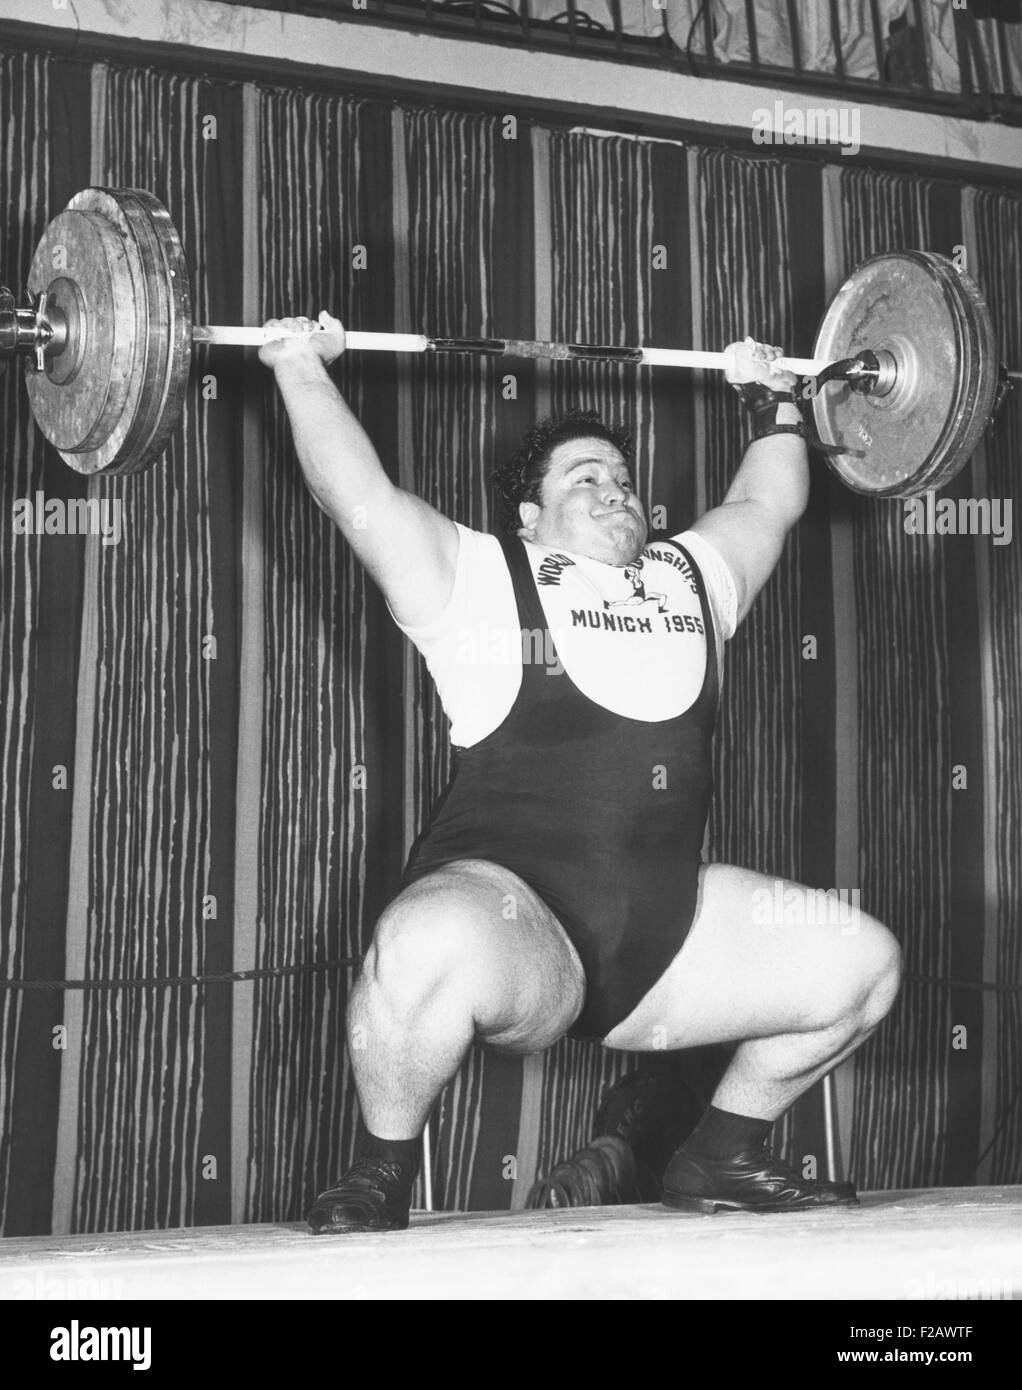 Paul Anderson lifts 320 pounds during the 1955 weightlifting World Championships at Munich. Oct. 19, 1955. He won - Stock Image